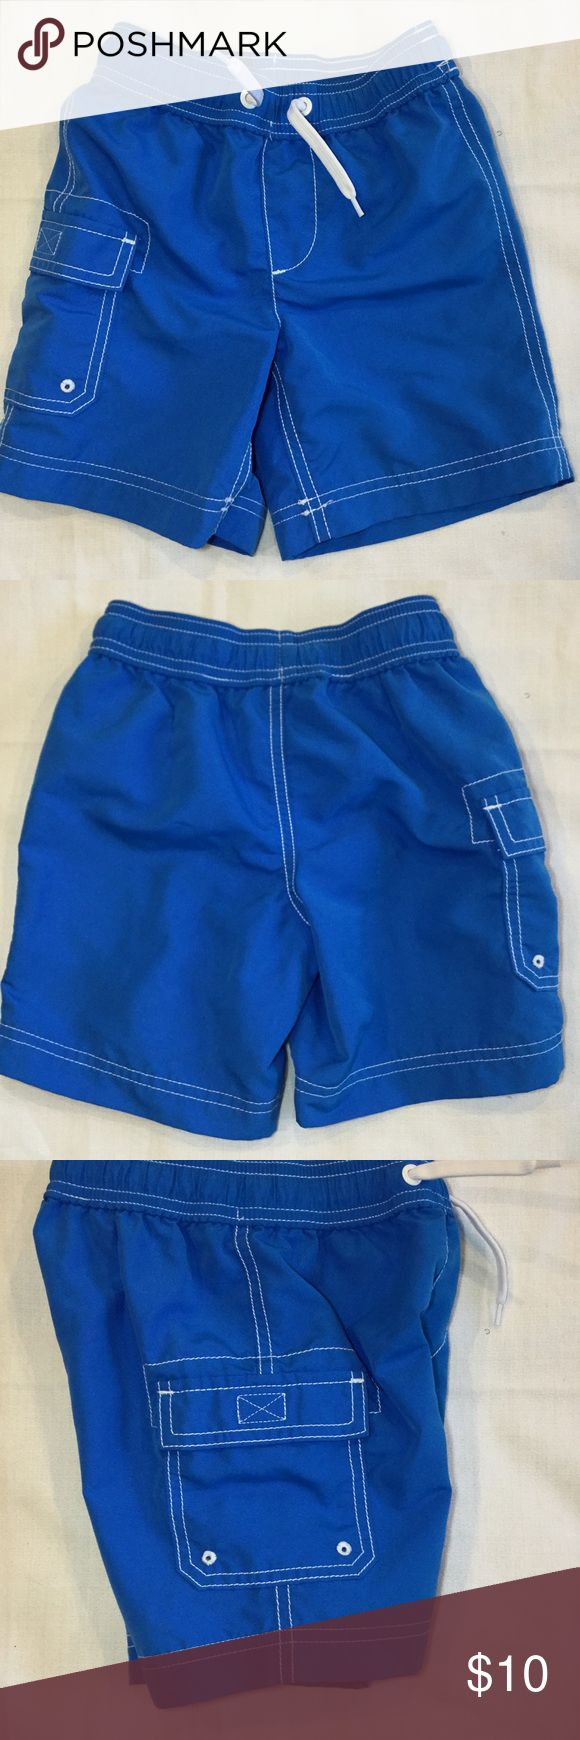 Lands End Boys Swim Shorts Trunks Mesh Lined. Lands End Boys Swim Shorts Trunks Mesh Lined Pocket Blue.This item are in very good used condition. Lands End Kids Swim Swim Trunks